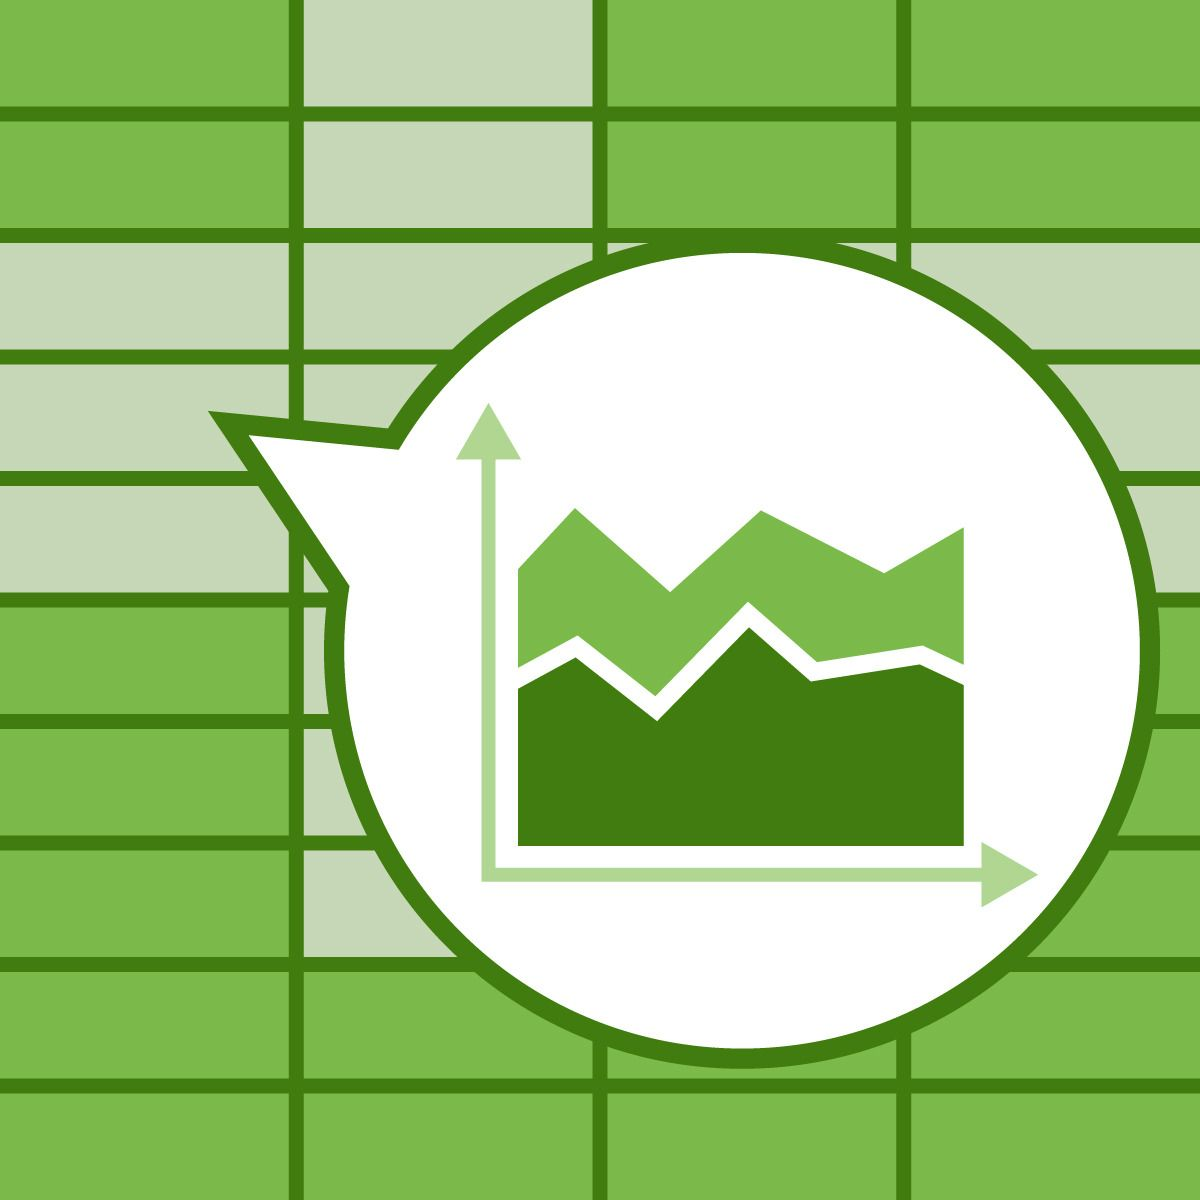 Mastering Data Analysis In Excel From Университет Дьюка